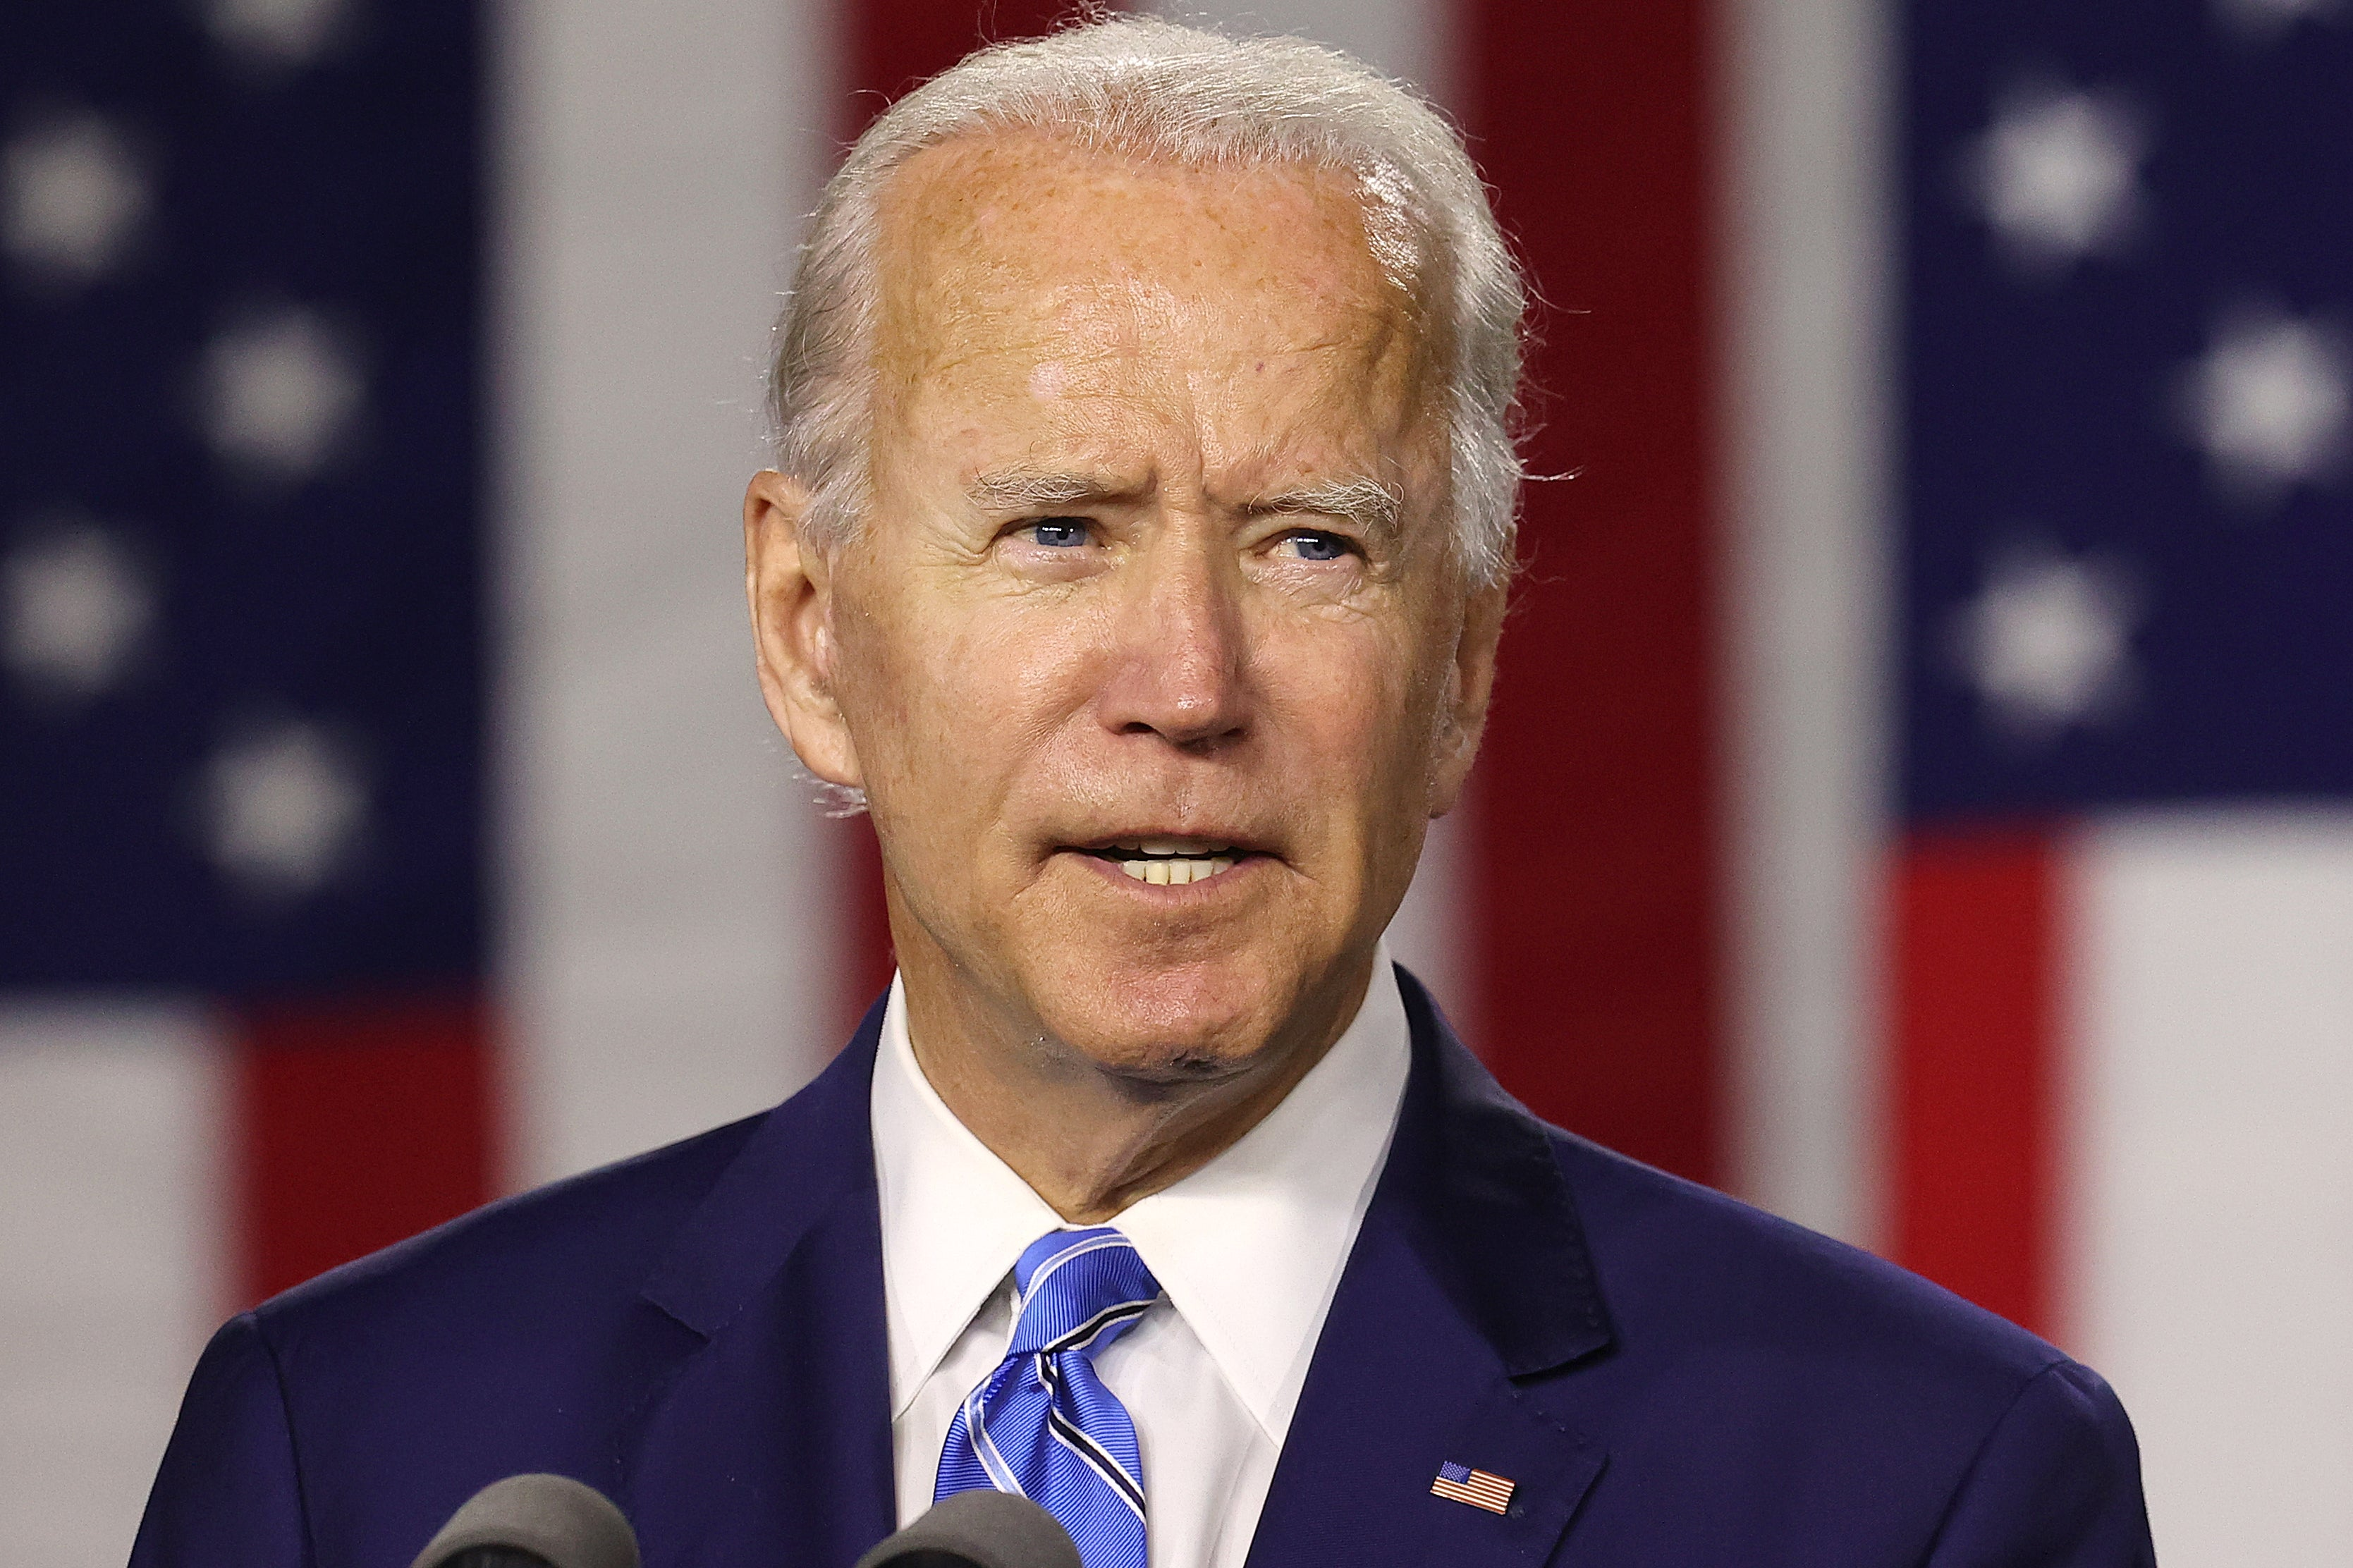 Inside Joe Biden's Network of Climate Advisers - Scientific American